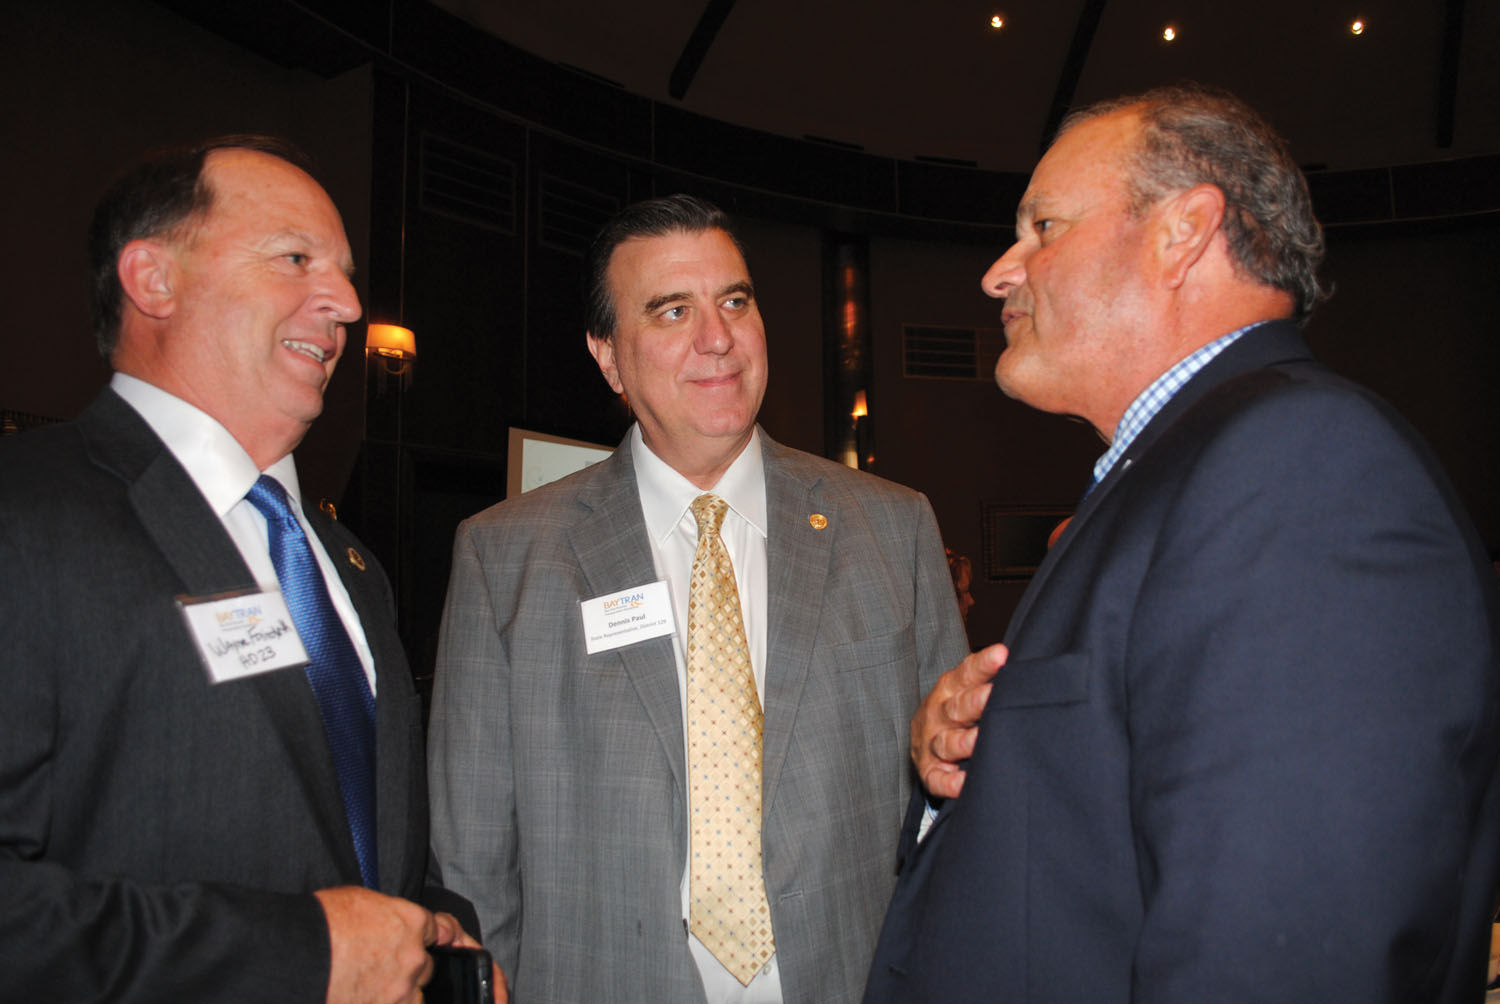 State Rep. Wayne Faircloth and Dennis Paul, from left, talk about the recent legislative session with TxDOT Executive Director Lt. Gen. Joe Weber during the Bay Area Houston Transportation Partnership's monthly luncheon June 18 at Cullen's.